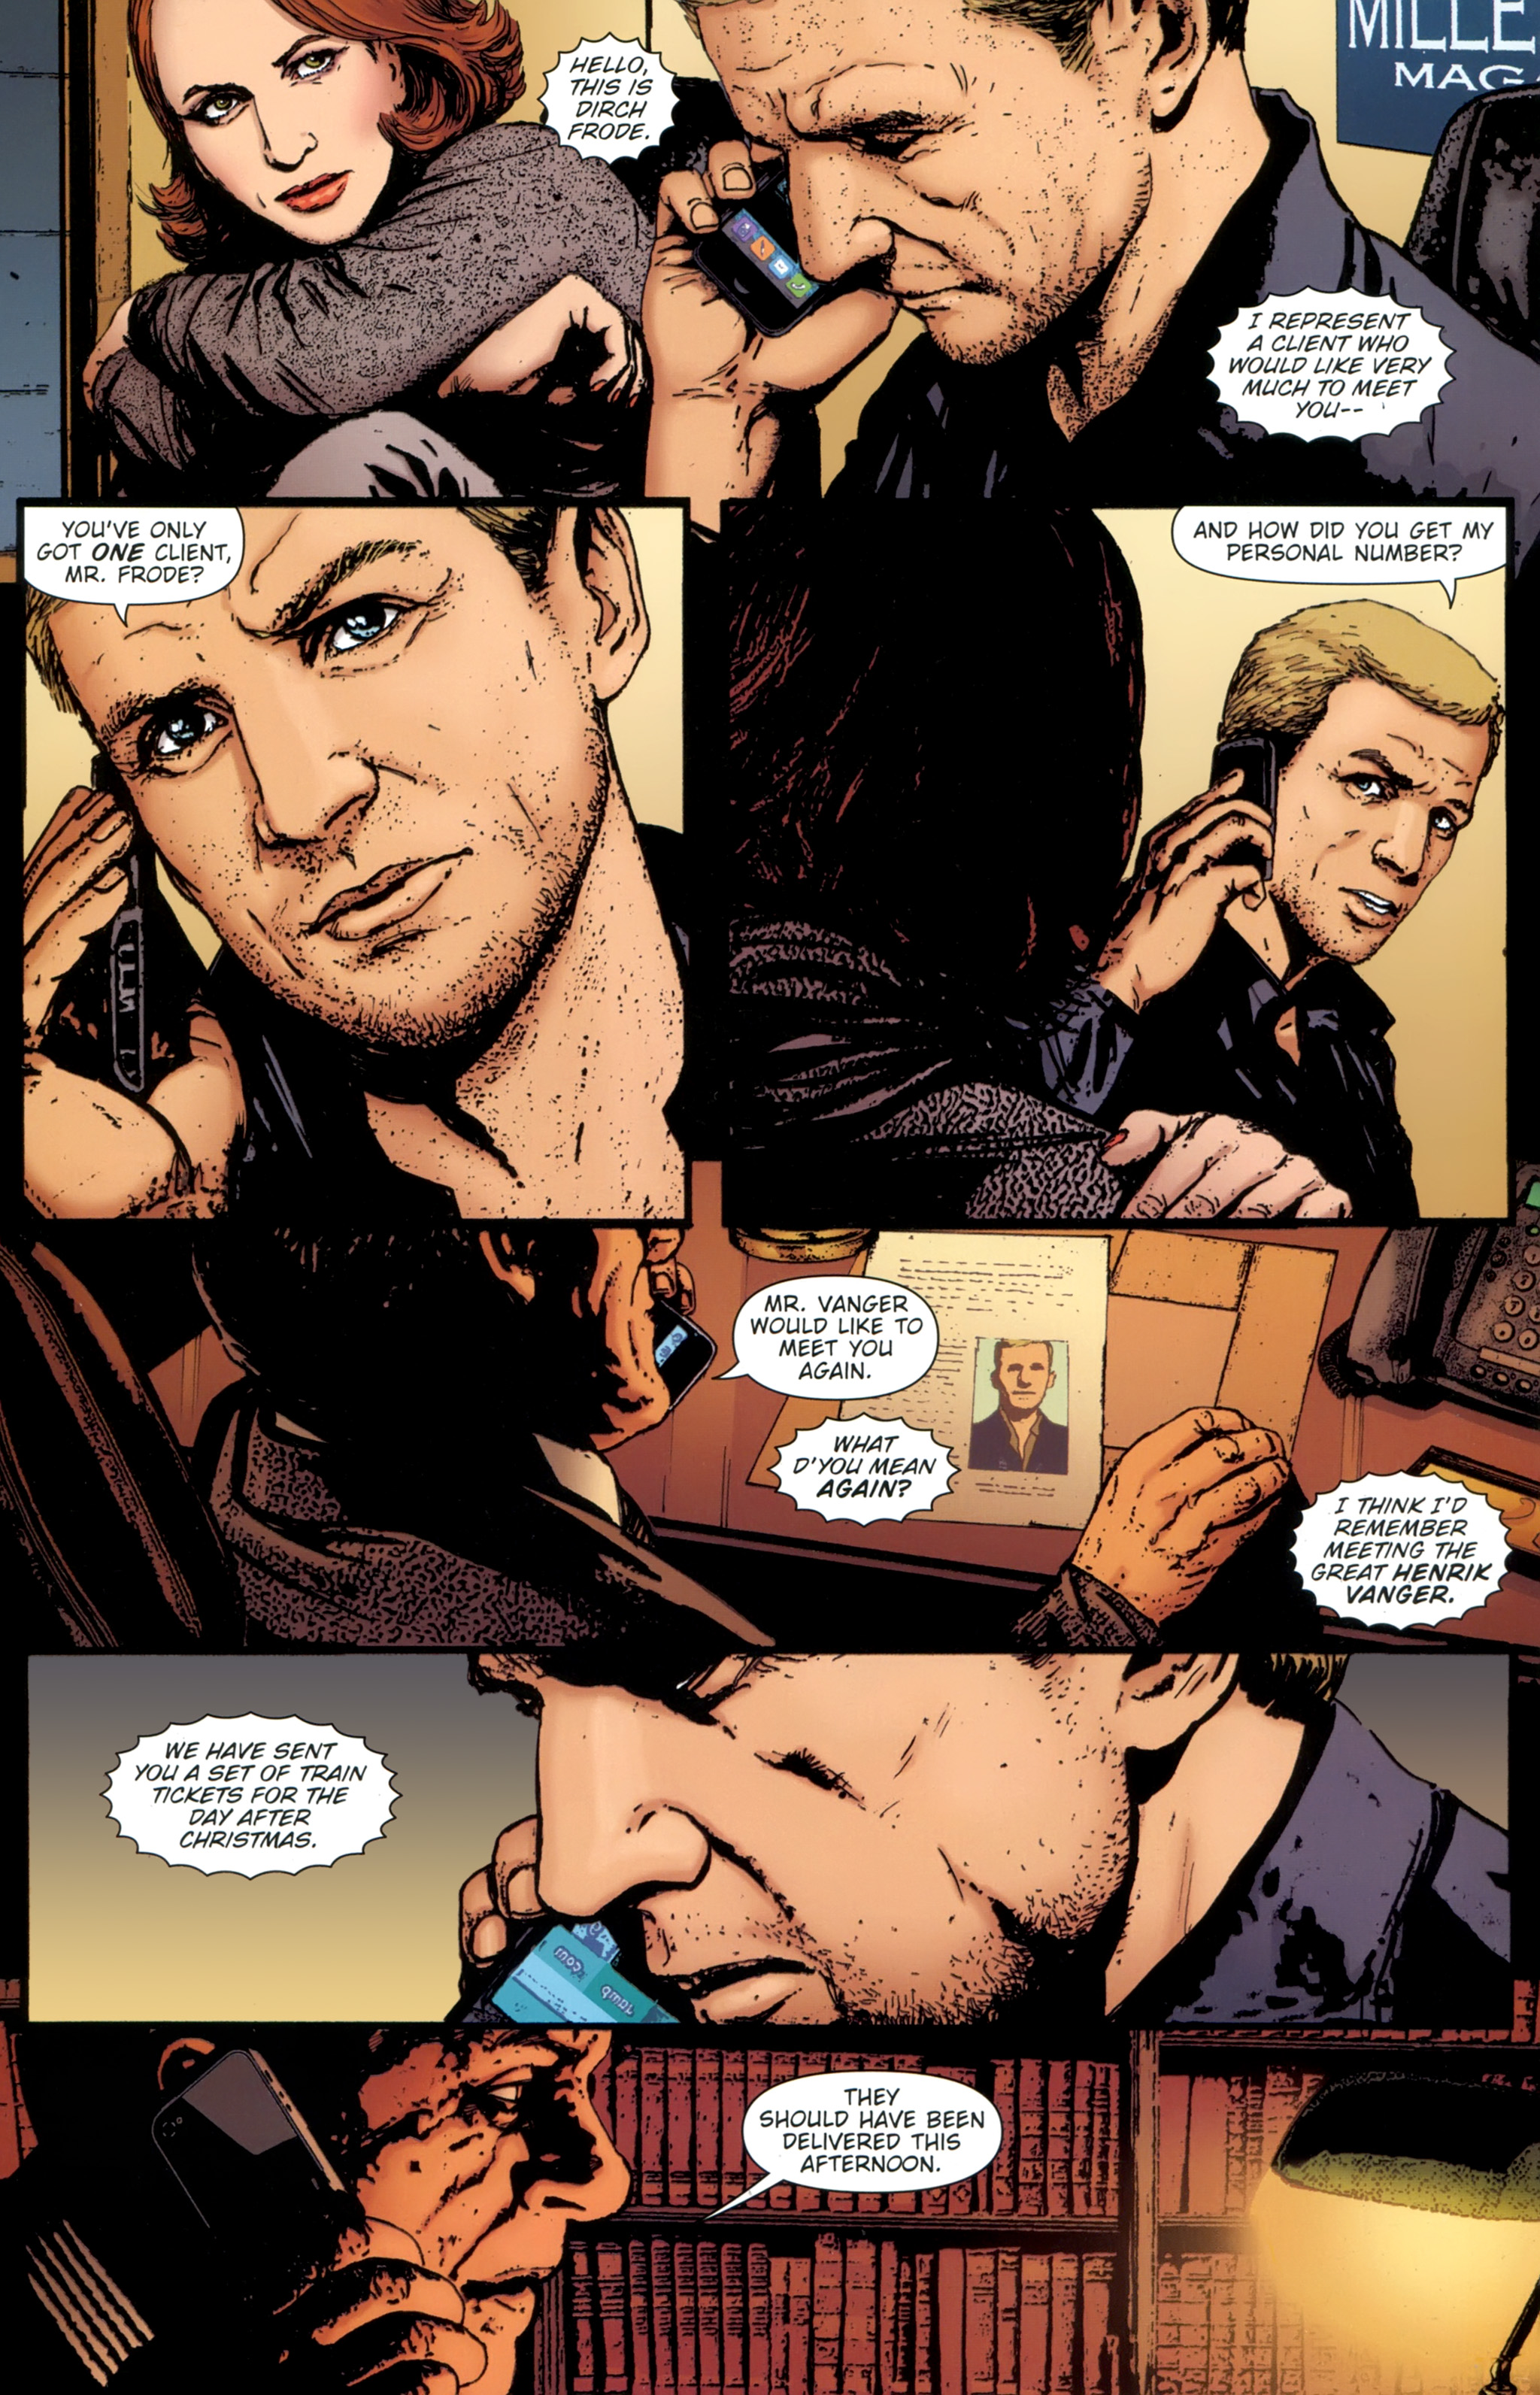 Read online The Girl With the Dragon Tattoo comic -  Issue # TPB 1 - 27